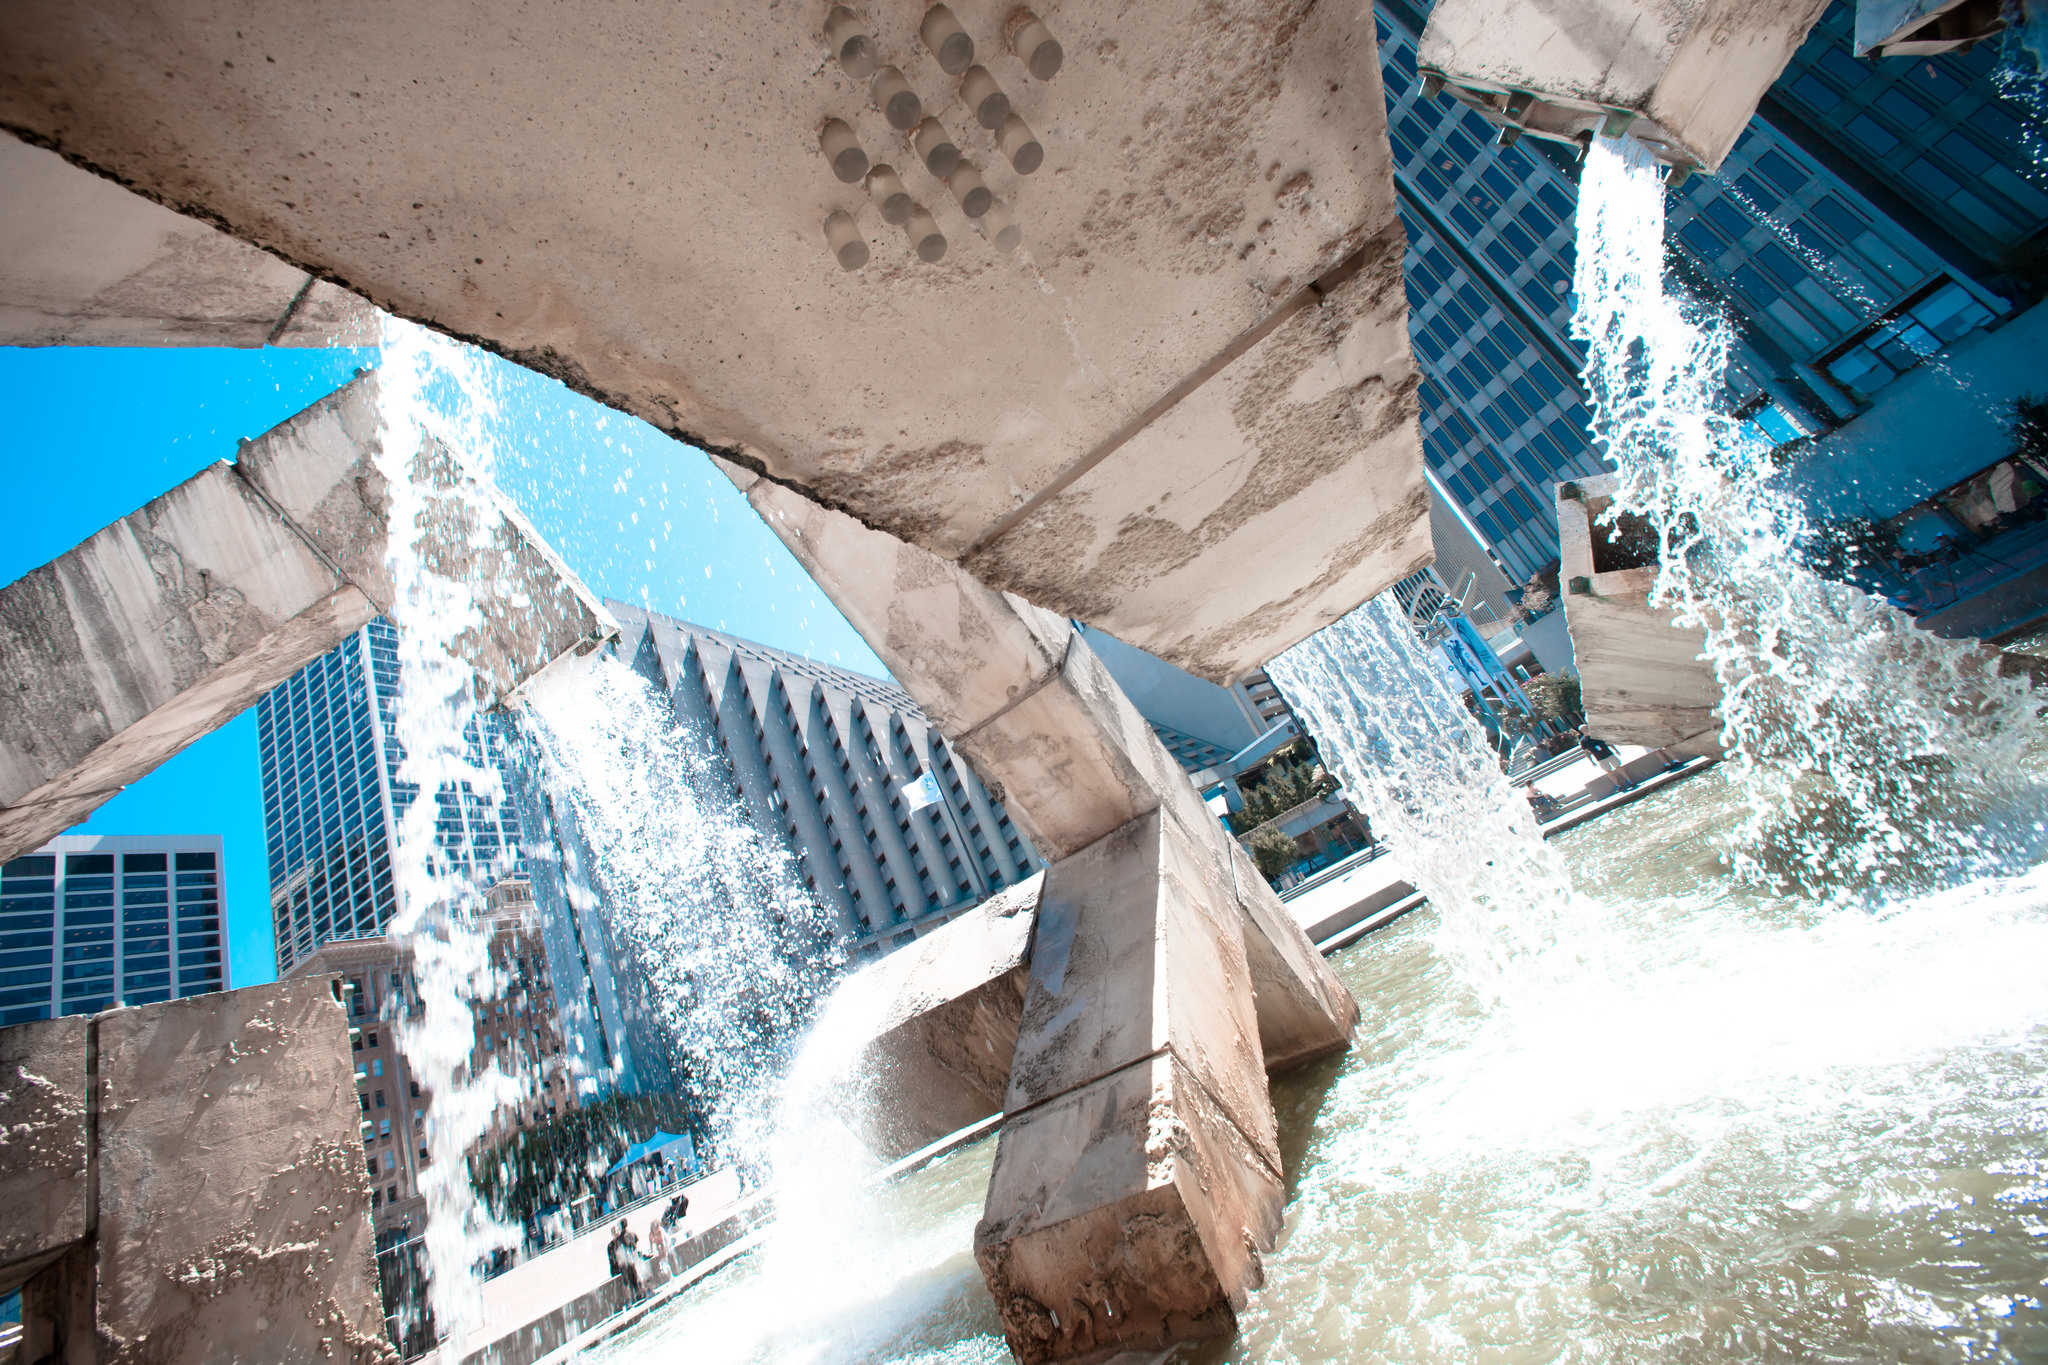 Image of fountain with water running out of its square spigots.